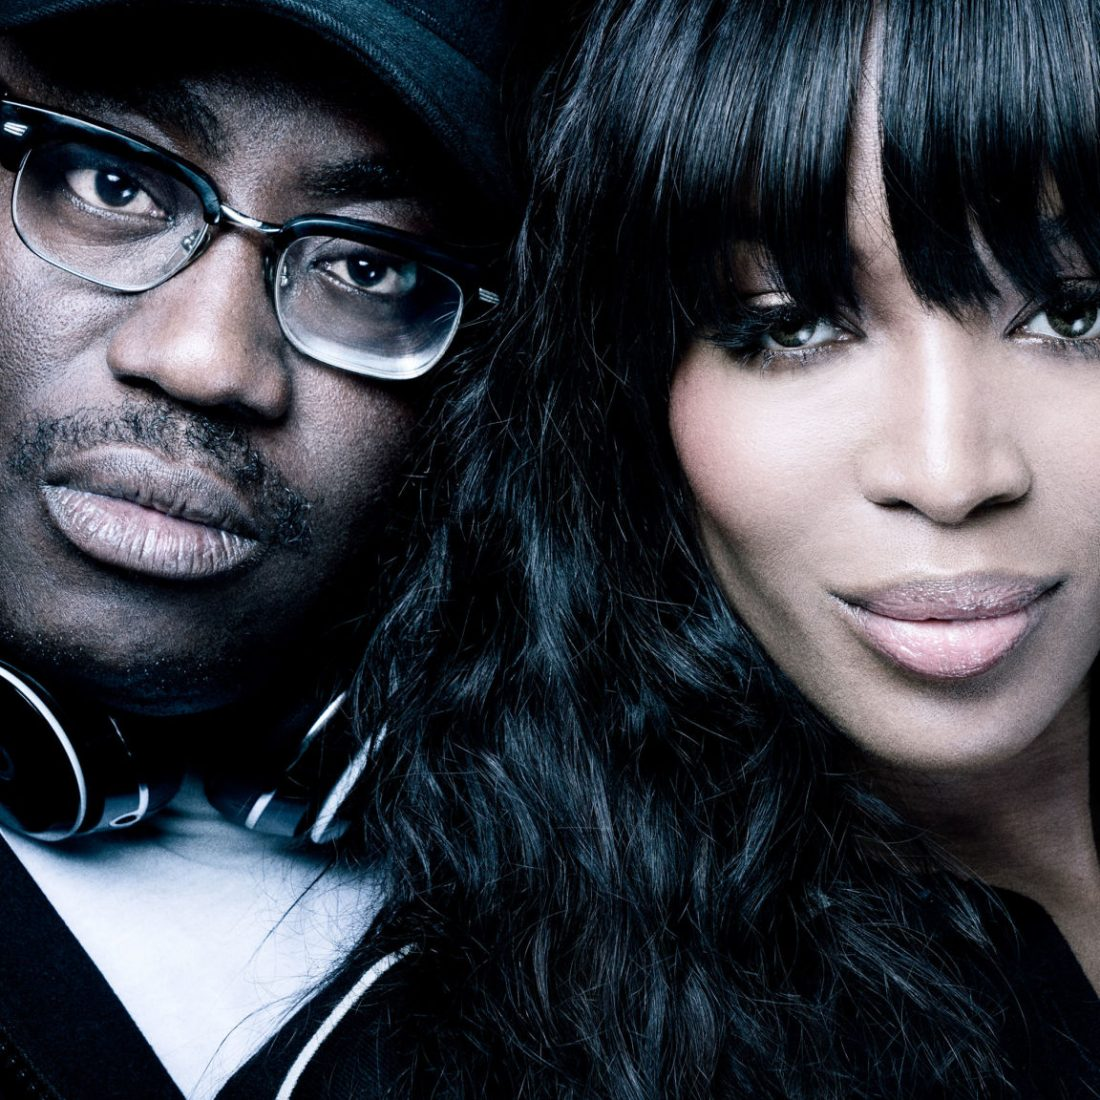 Edward Enniful and Naomi Campbell - Image credit: Benedict Evans